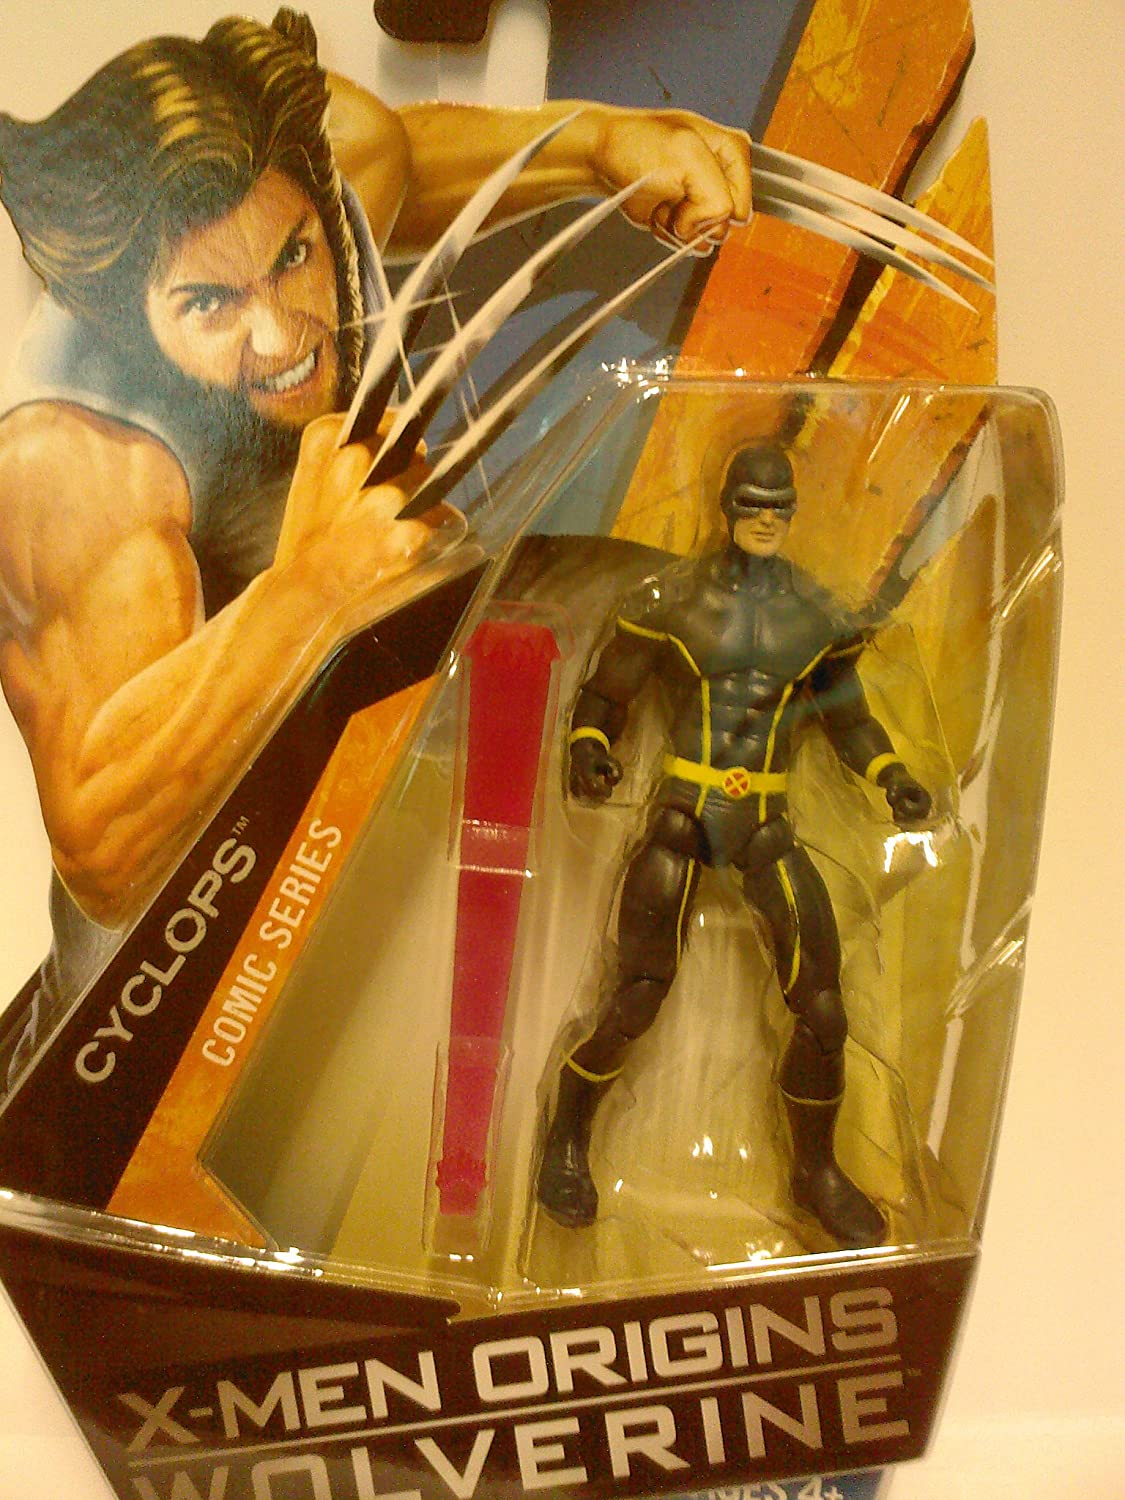 Toy Rocket X-Men Origins Wolverine Comic Series 3 3//4 Inch Action Figure Cyclops Hasbro 0653569416463 6E-F1VN-UOU8